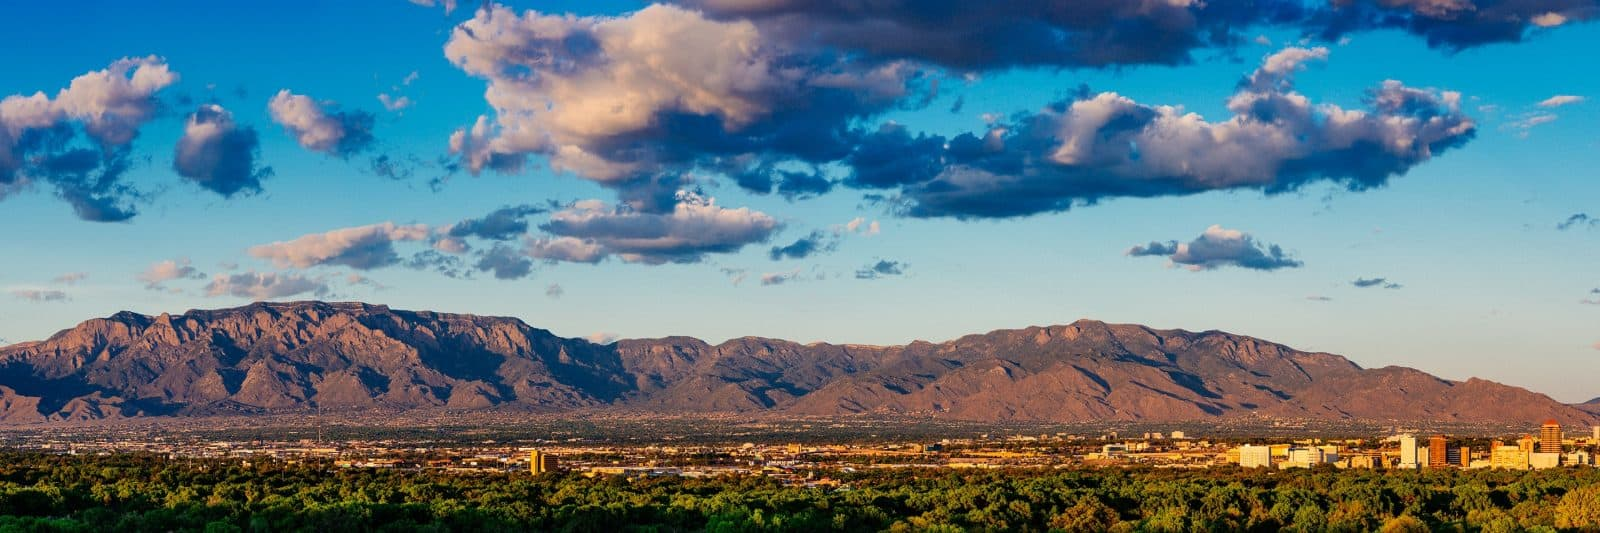 Where To Buy CBD in New Mexico